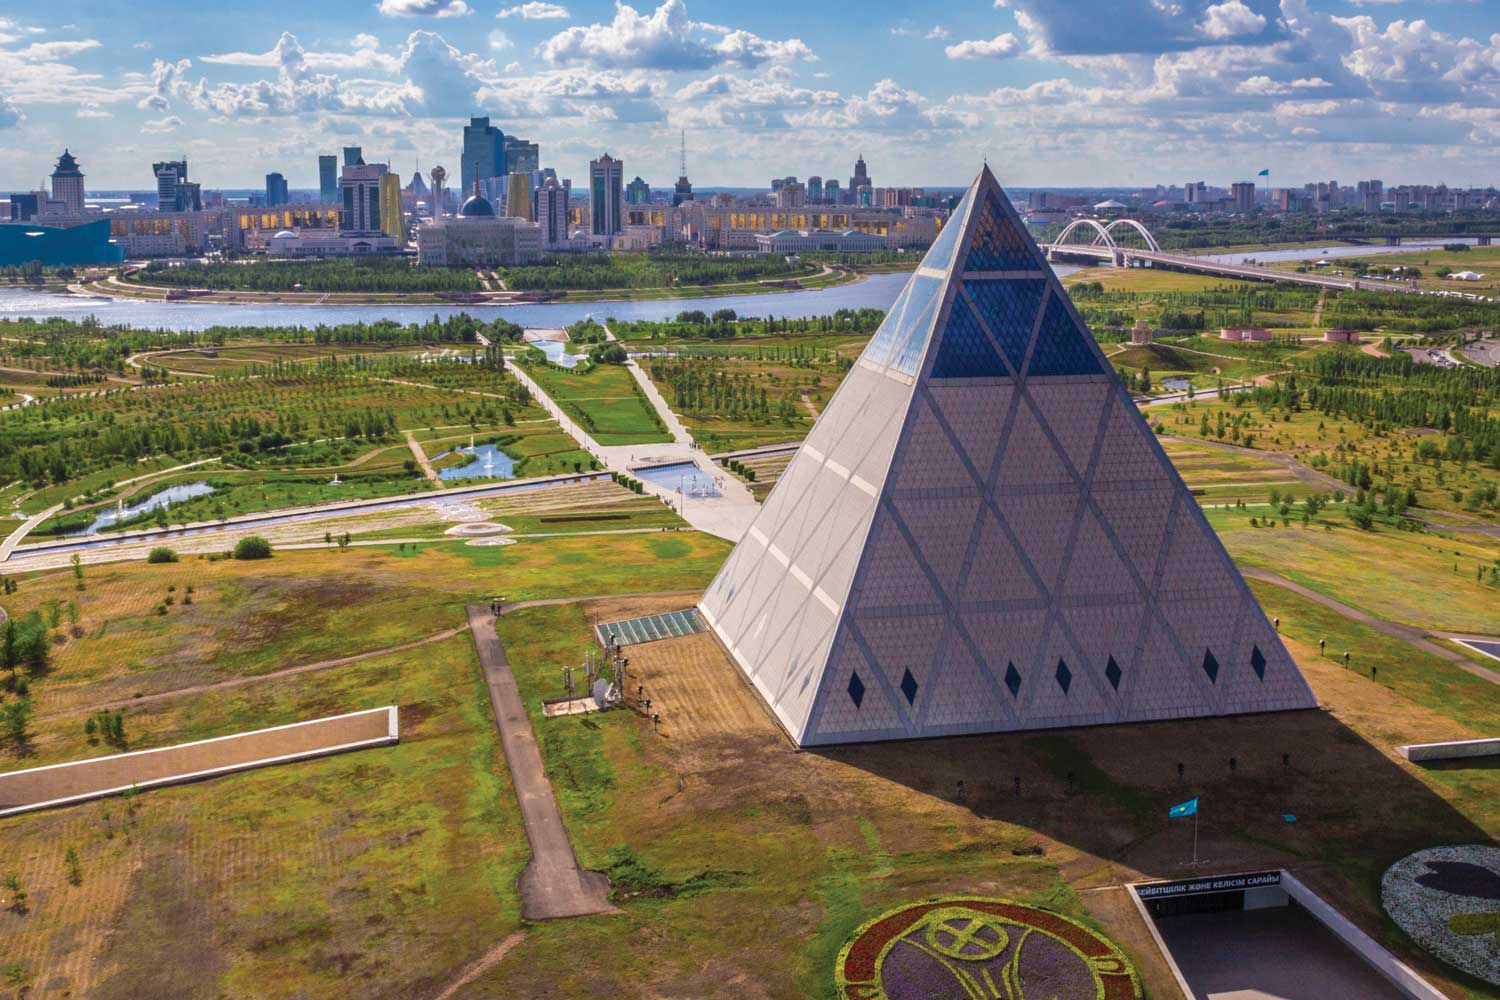 Palace of Peace and Reconciliation (Pyramid)